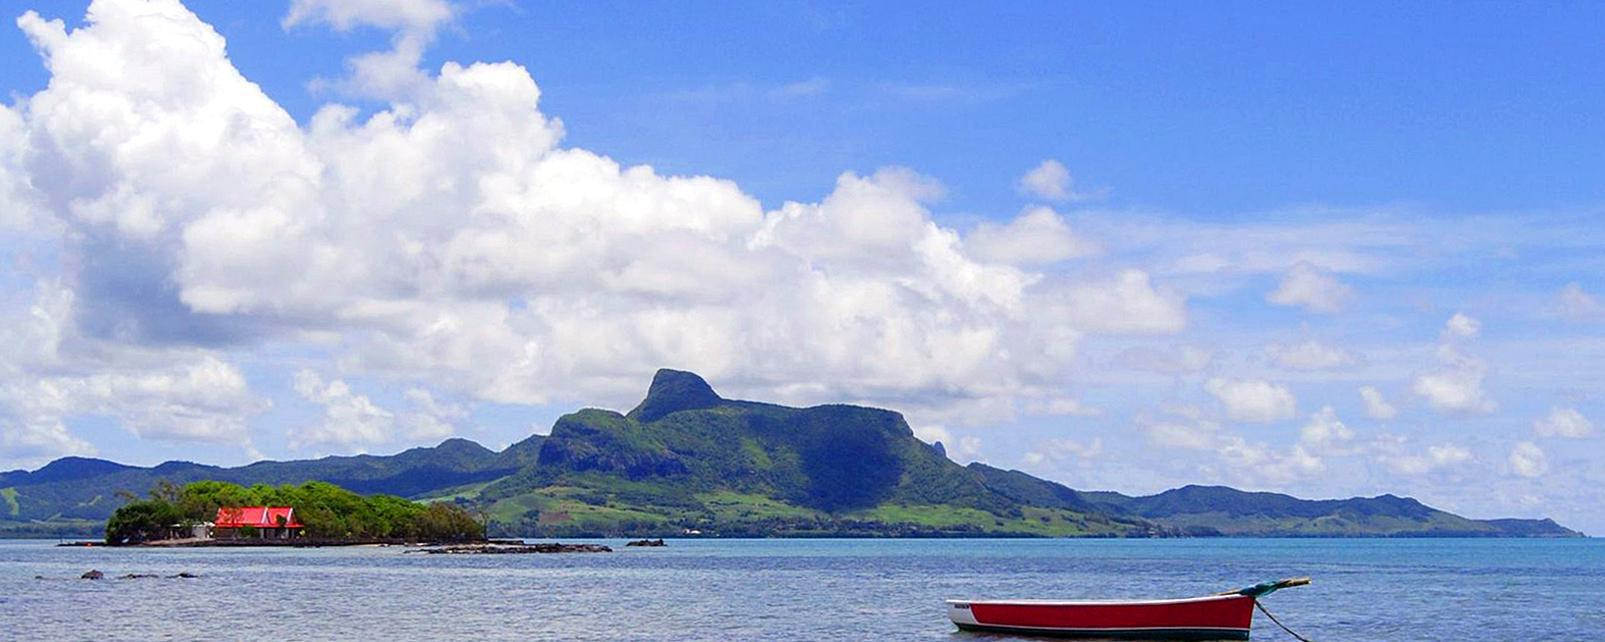 Travel to mauritius discover mauritius with easyvoyage - Meteo port louis ile maurice ...